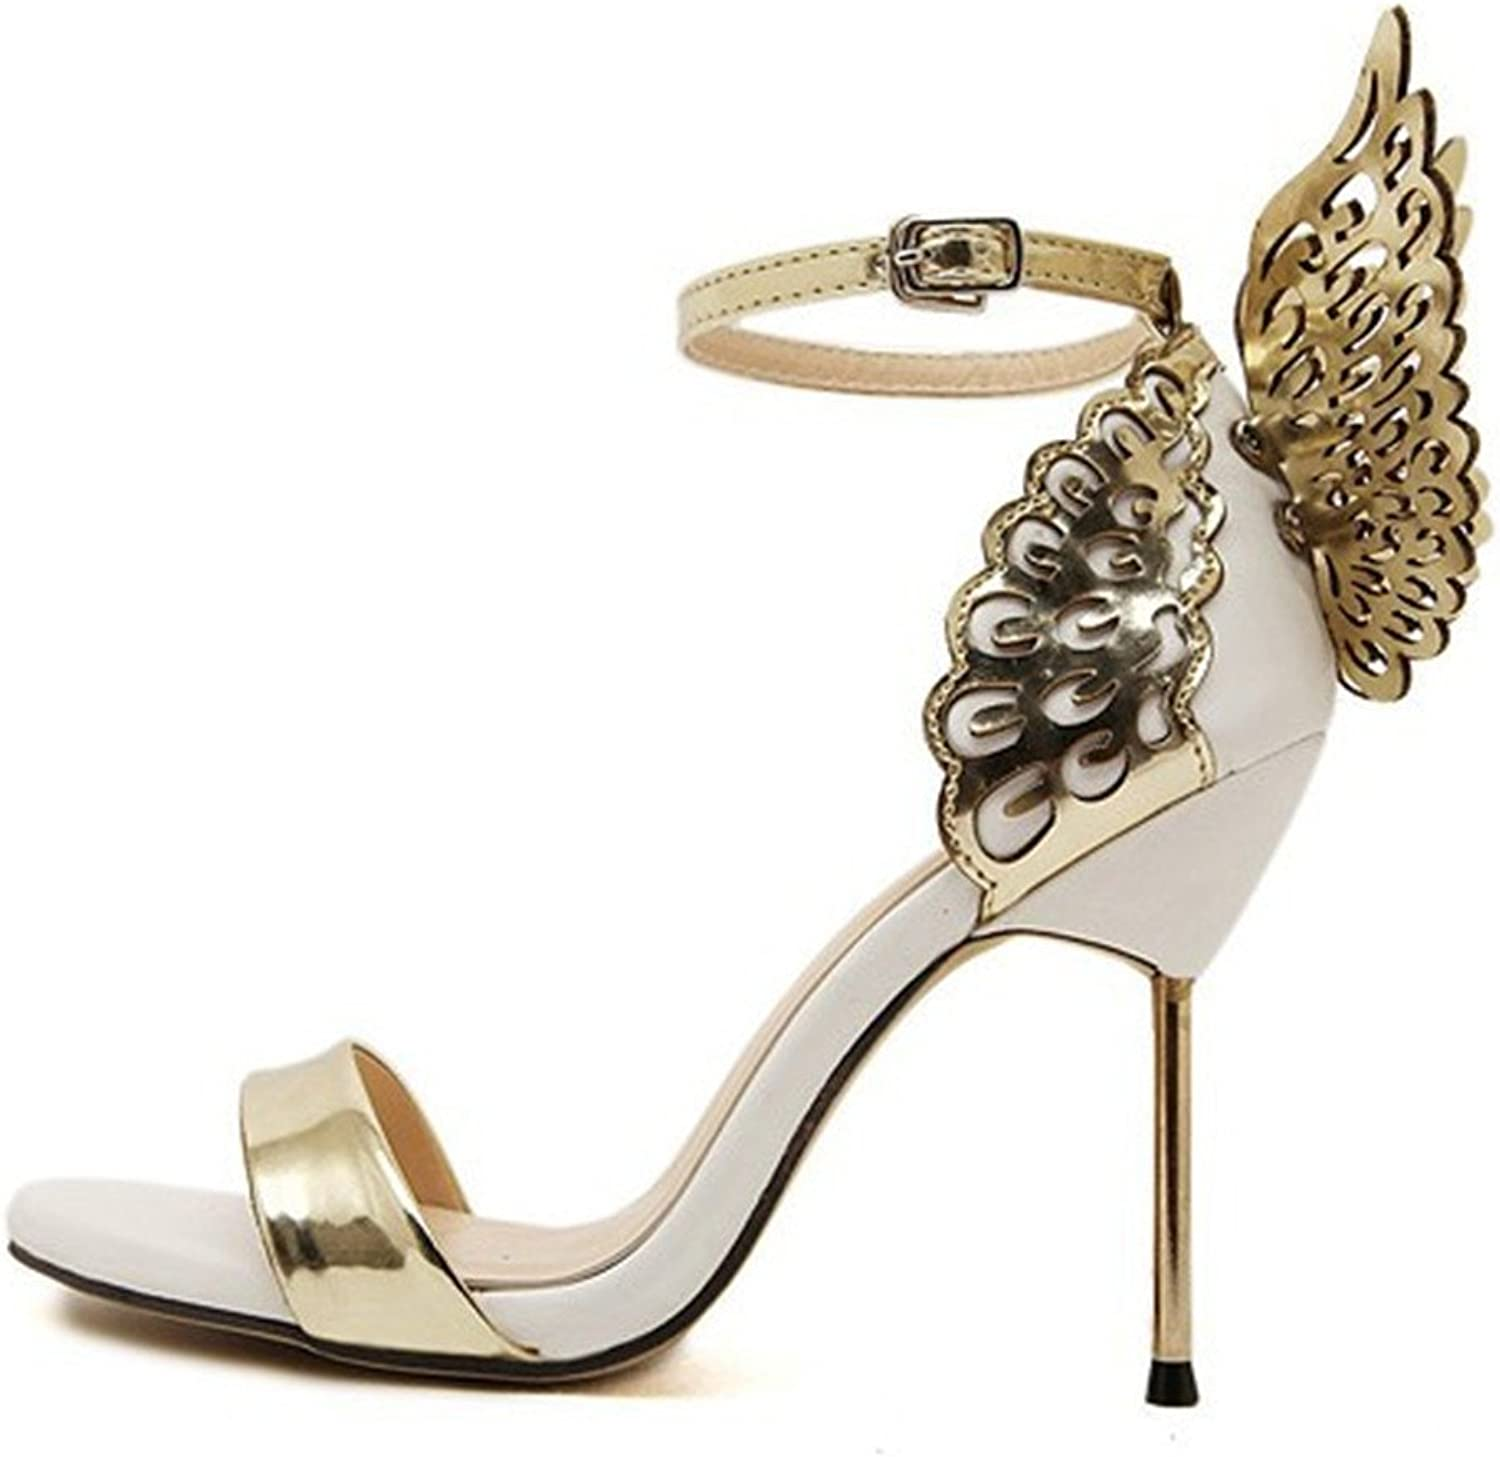 Quality.A Women shoes Luxury Summer High Heel Sandal shoes Ladies Sandal Sexy for Party